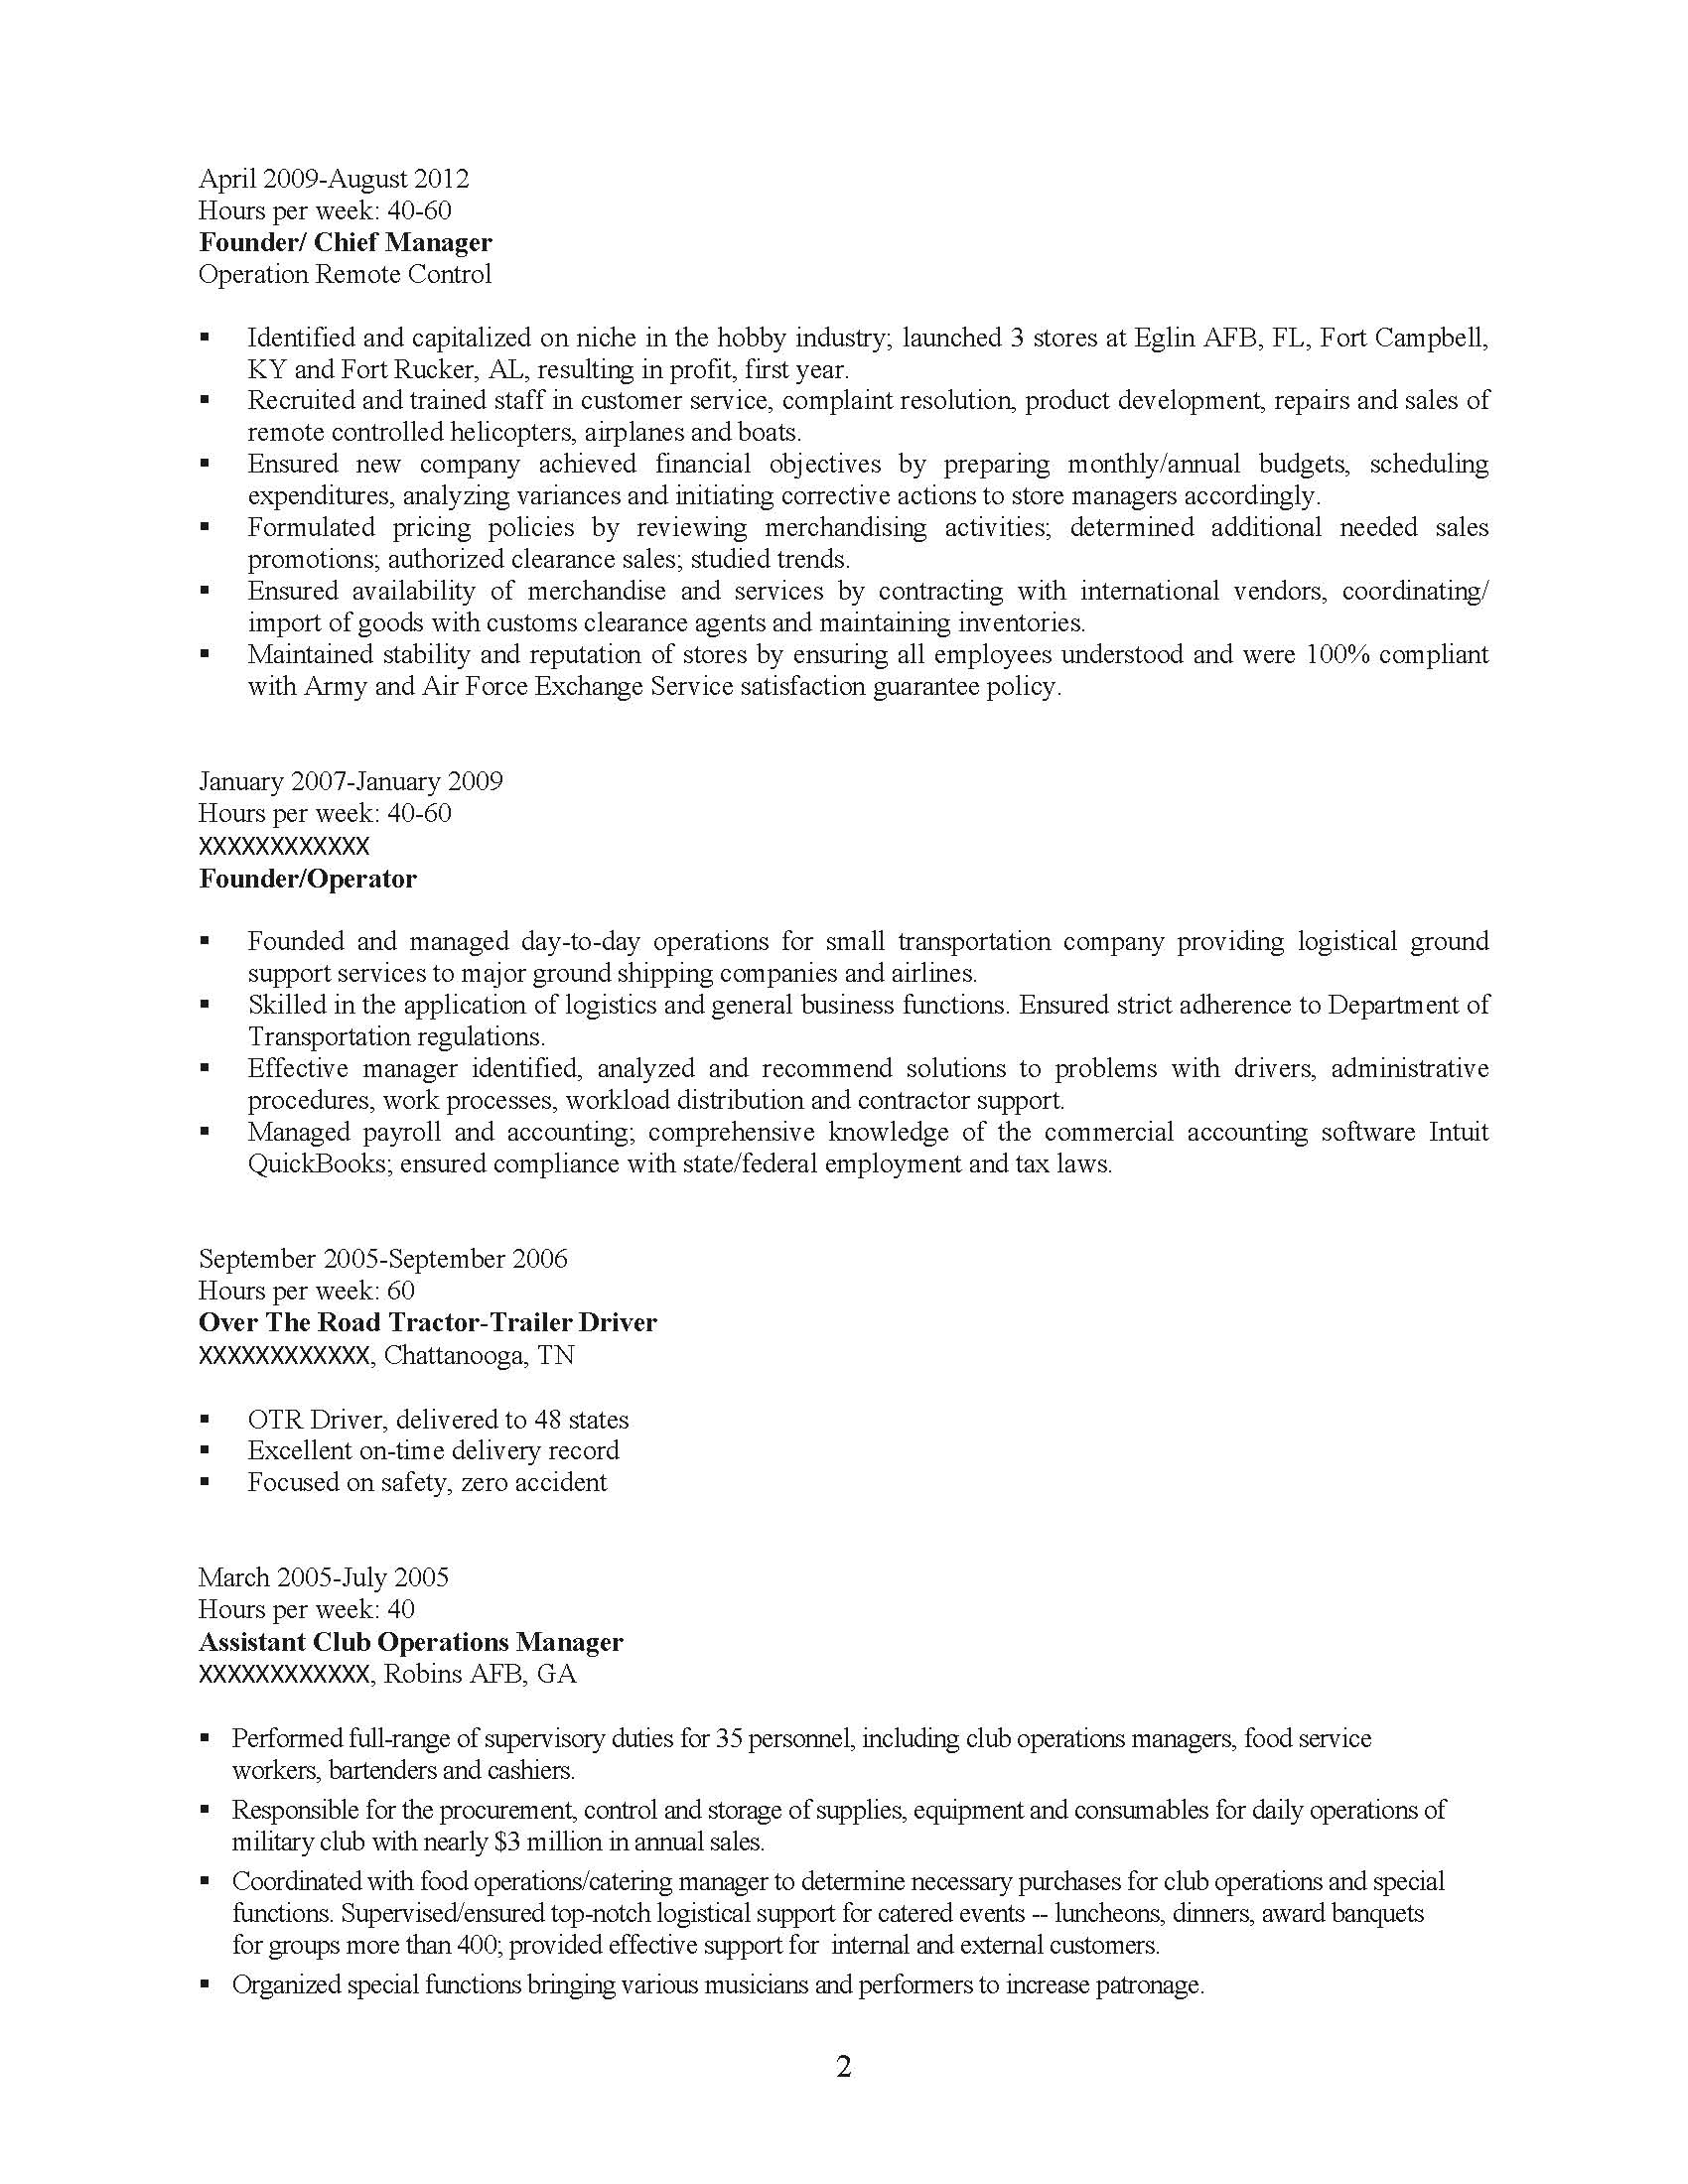 senior management professional resume sample before 2 - Security Forces Resume